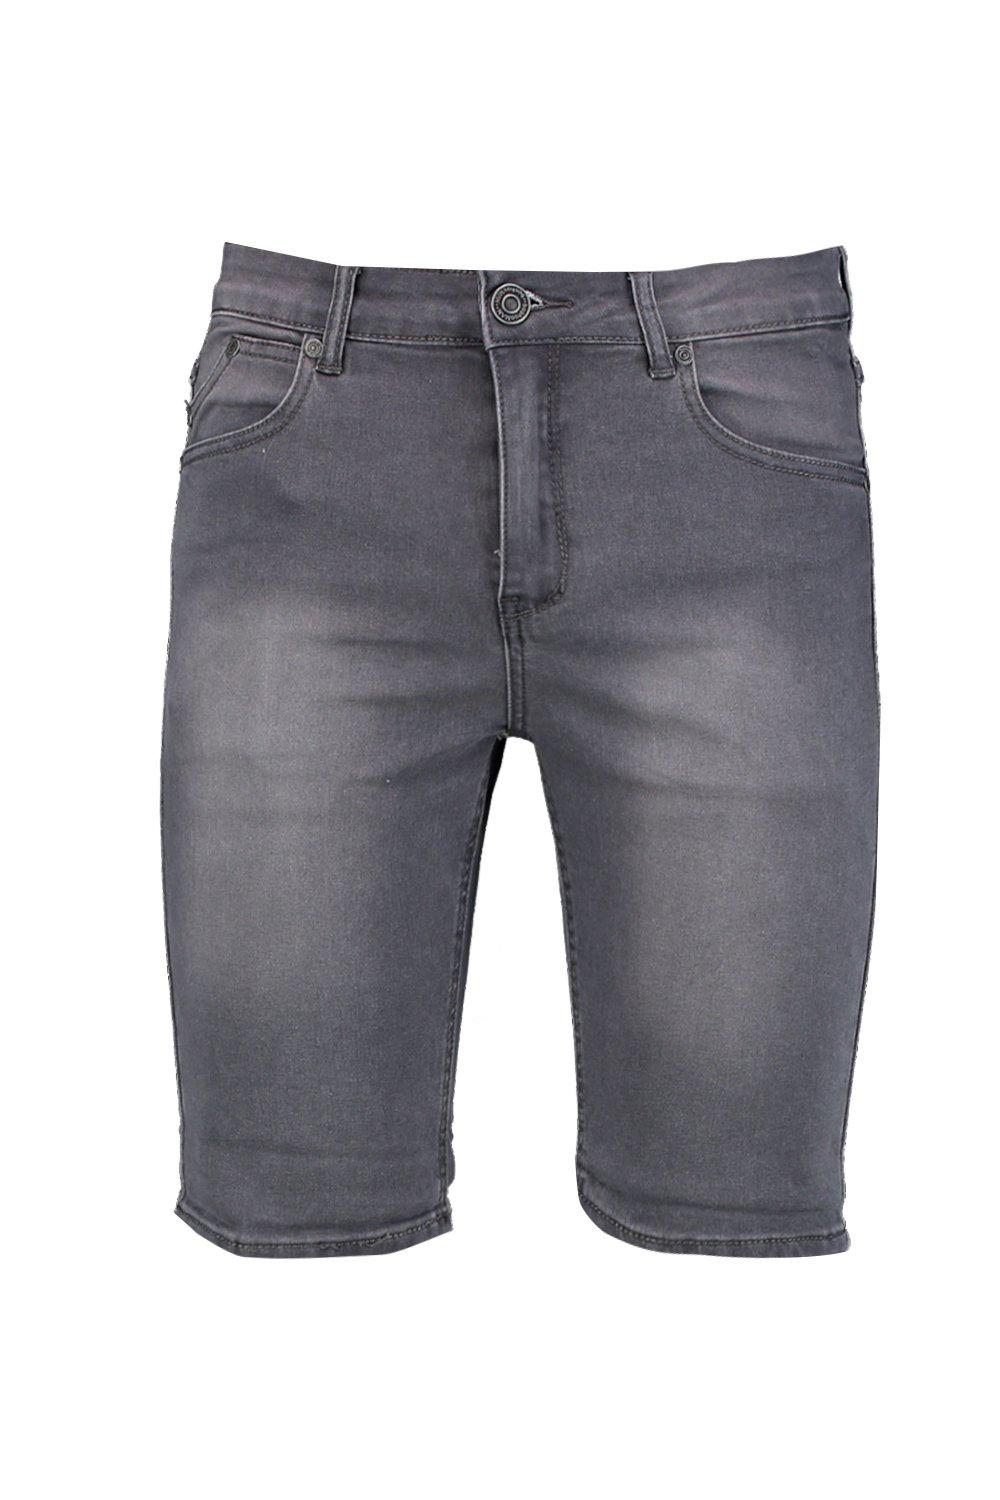 Shorts Skinny Denim Charcoal Fit charcoal Washed YYq4gap